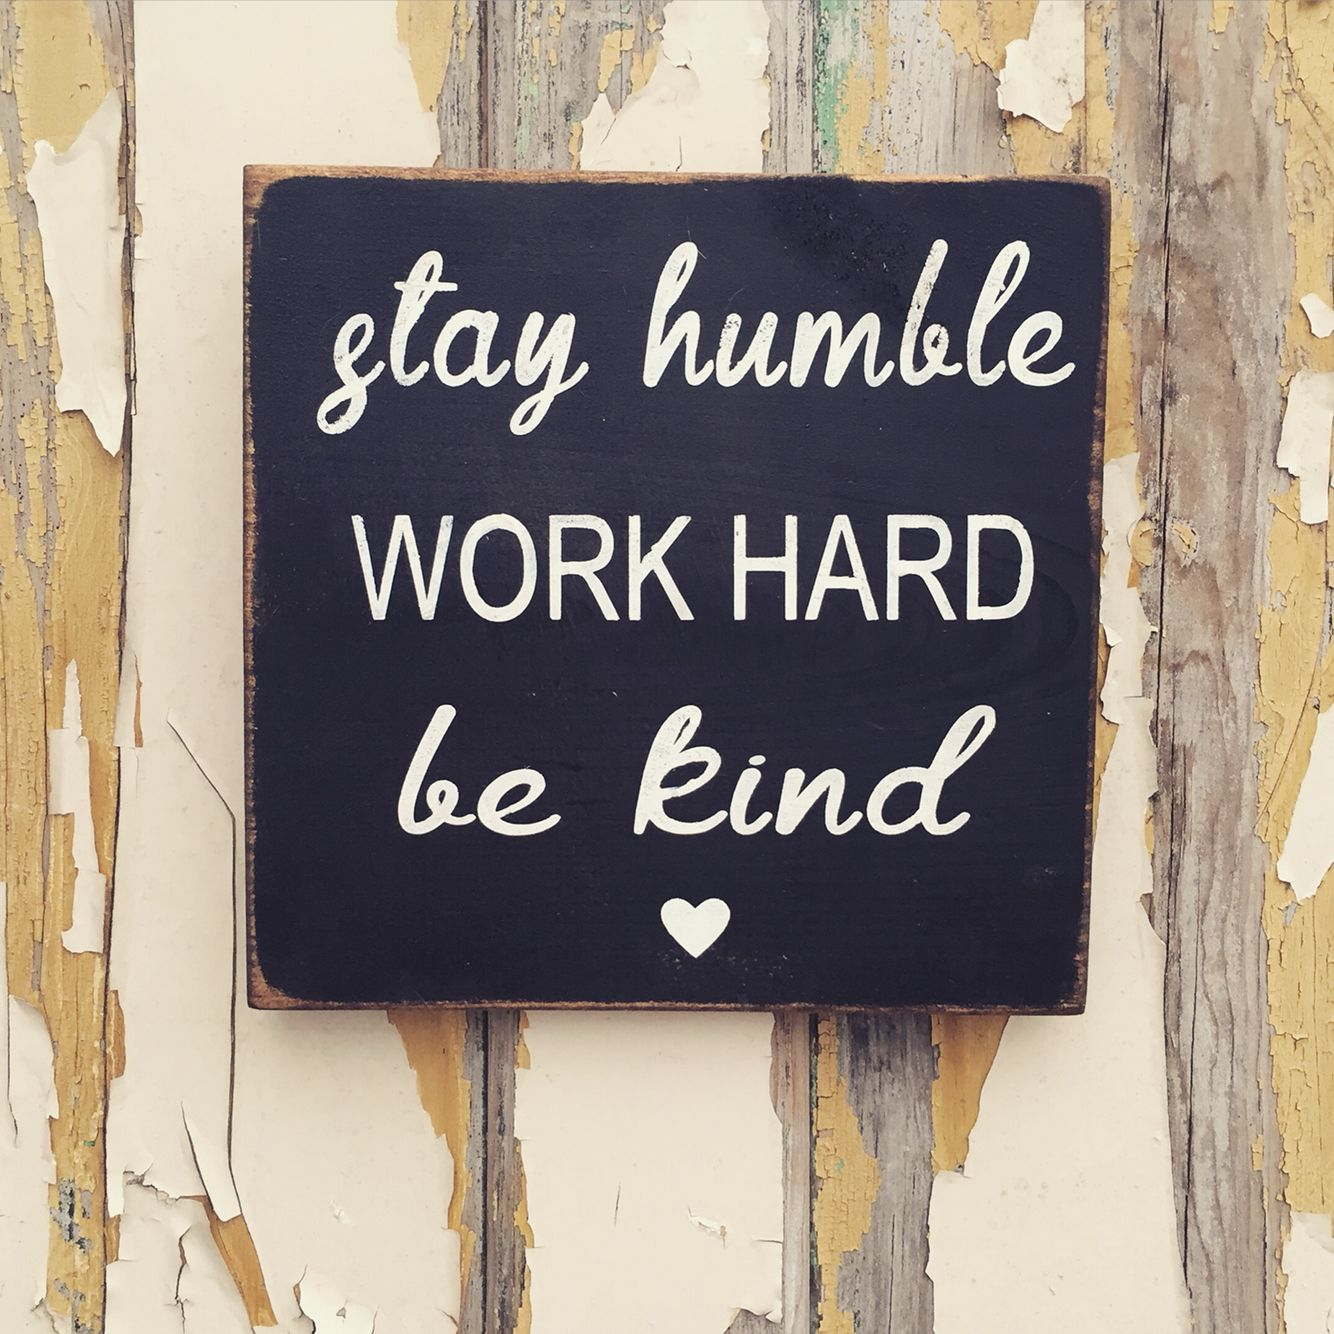 Stay humble work hard be kind sign by Prim Pickins Made in Canada